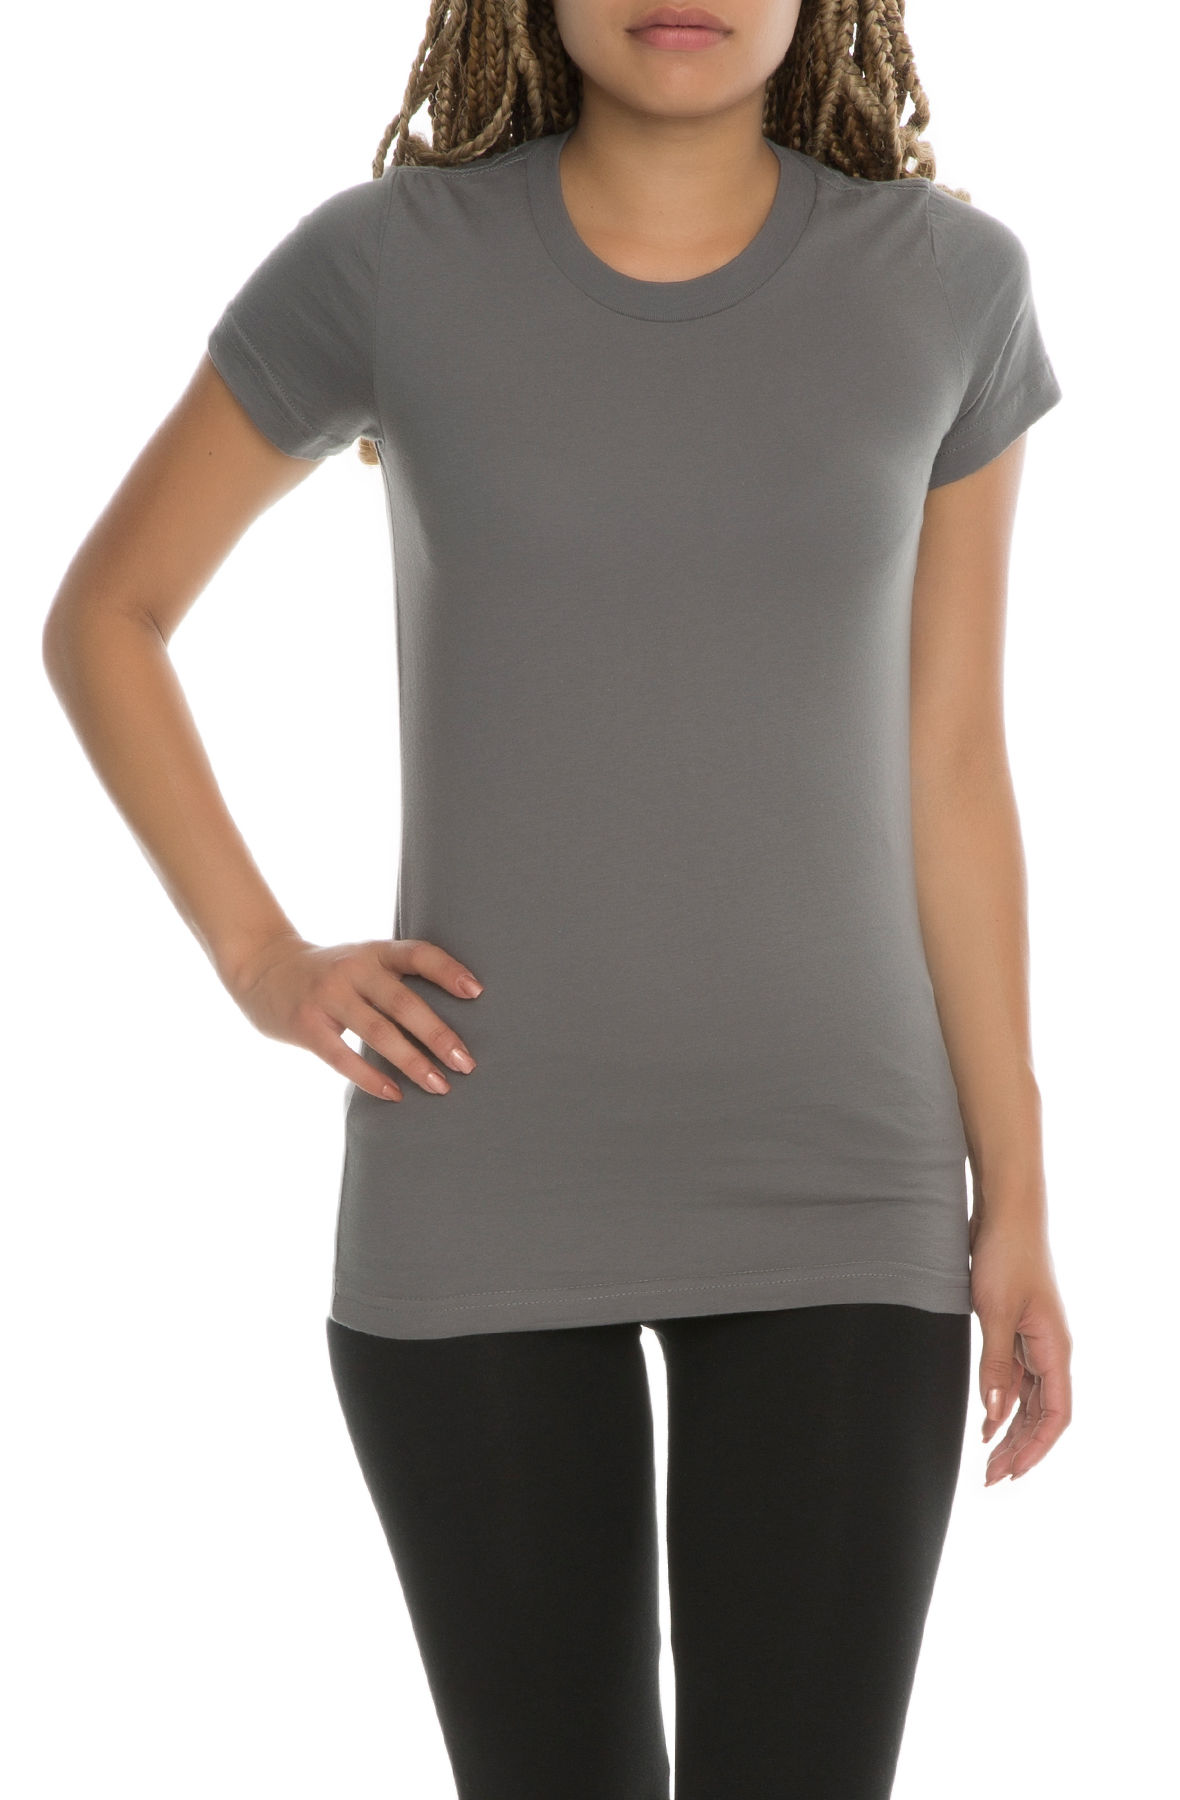 Image of The Debra Women's Basic Crew Neck Tee in Asphalt